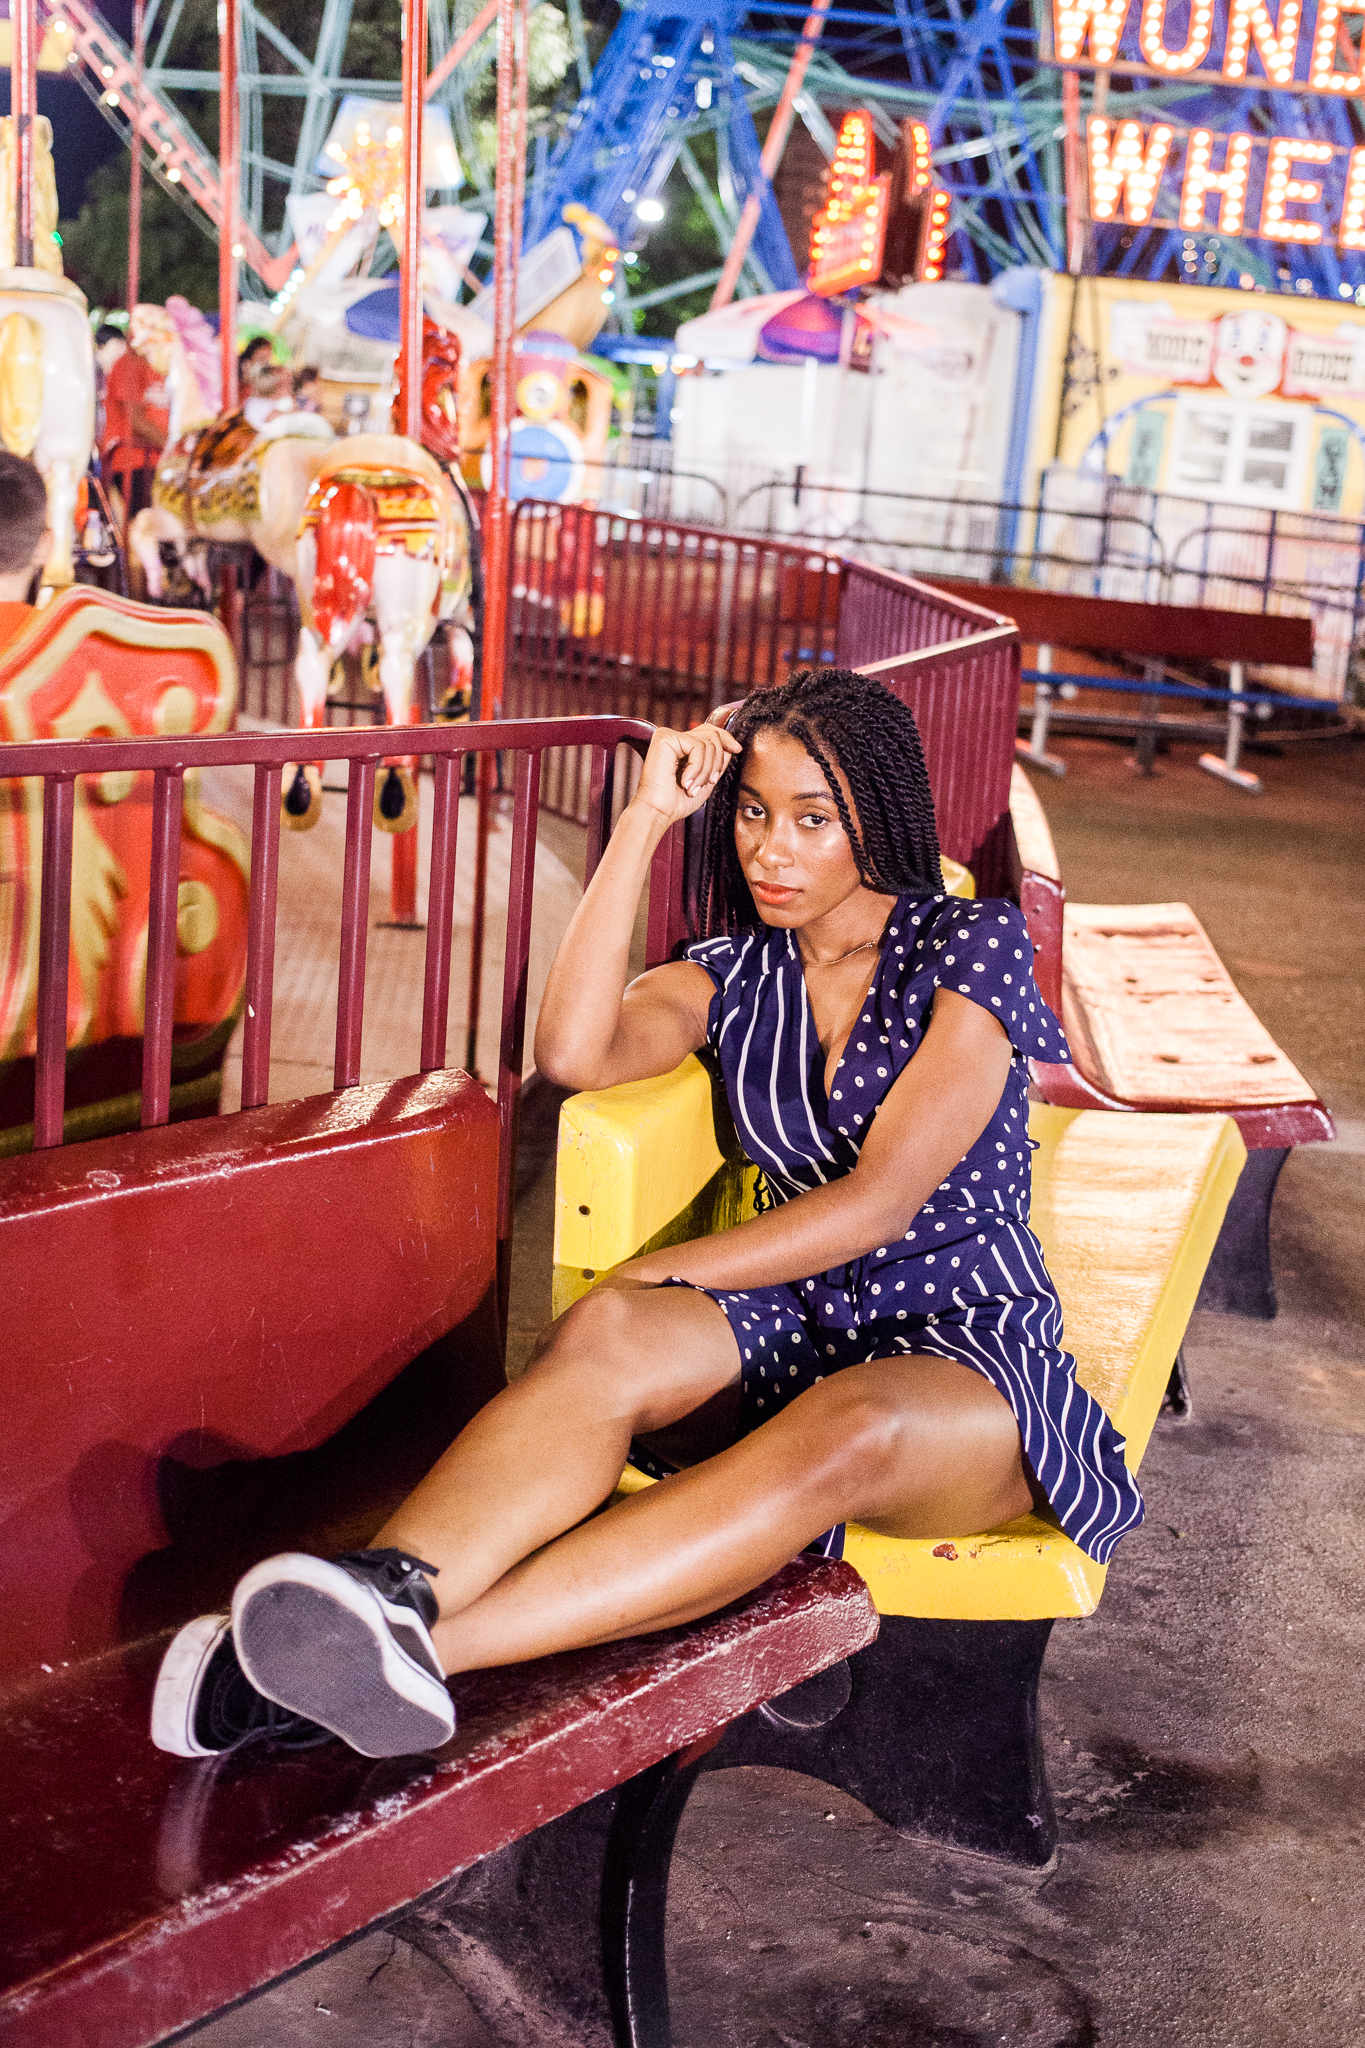 whomstudio_iman-artwell-freeman_coney-island_nyc_0111-web.jpg